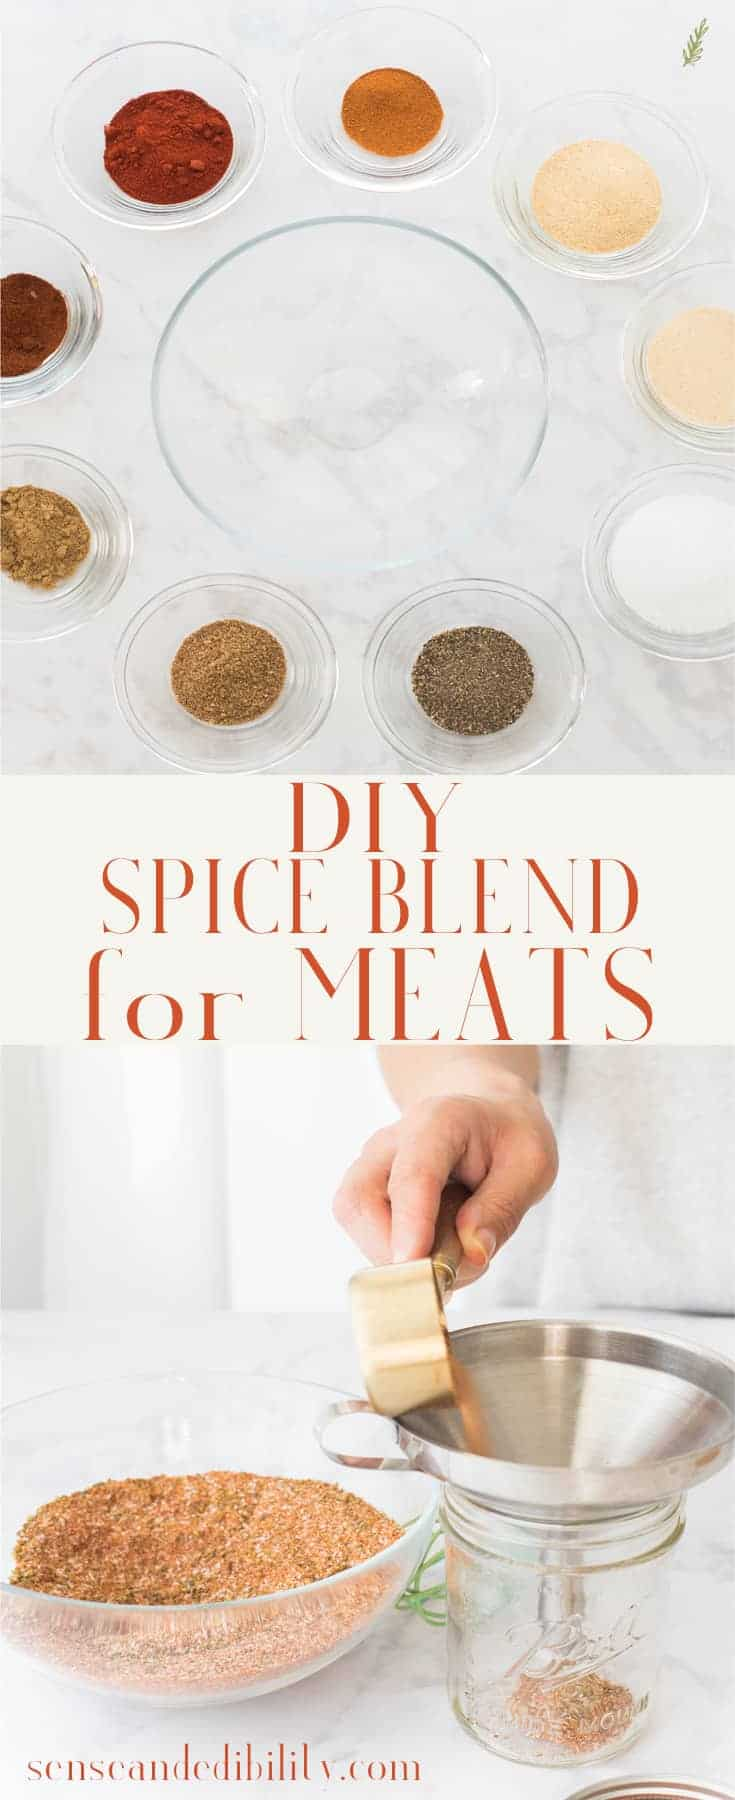 Meat Spice Blend tastes even better when made at home. Not only is it economical, it's fully customizable. Use your favorite spices and herbs in your preferred quantity. Gluten free. #meatspiceblend #spiceblends #spiceblend #spices #meatrub #spicerub #poultryspice #poultryrub #wingseasoning #seasoning #seasonsalt #allpurposeseasoning #seasonall #sazonador #especias #saltblend #homemadespicerub #homemadespiceblend via @ediblesense